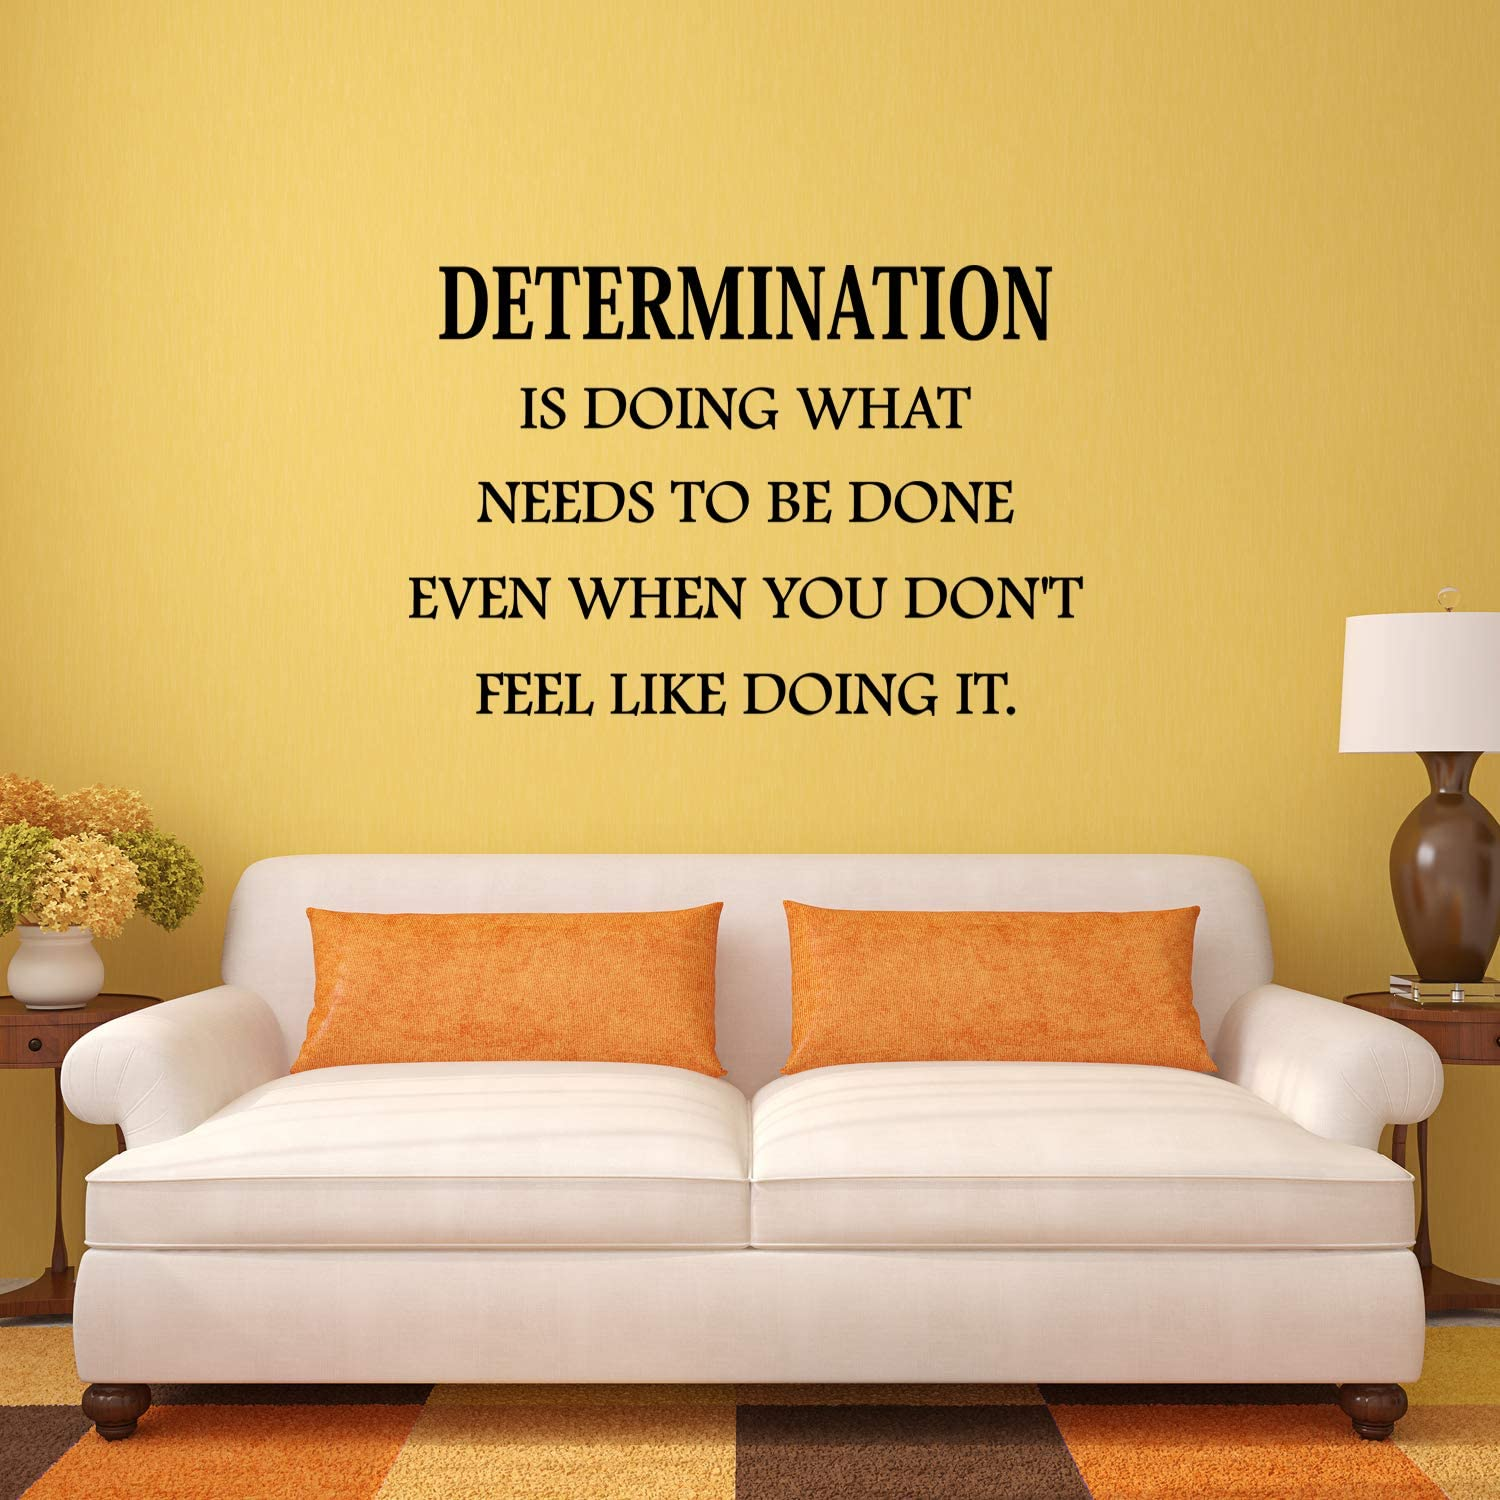 VWAQ Determination Wall Decal is Doing What Needs to be Done Quote Home and Office Wall Decor - Blac